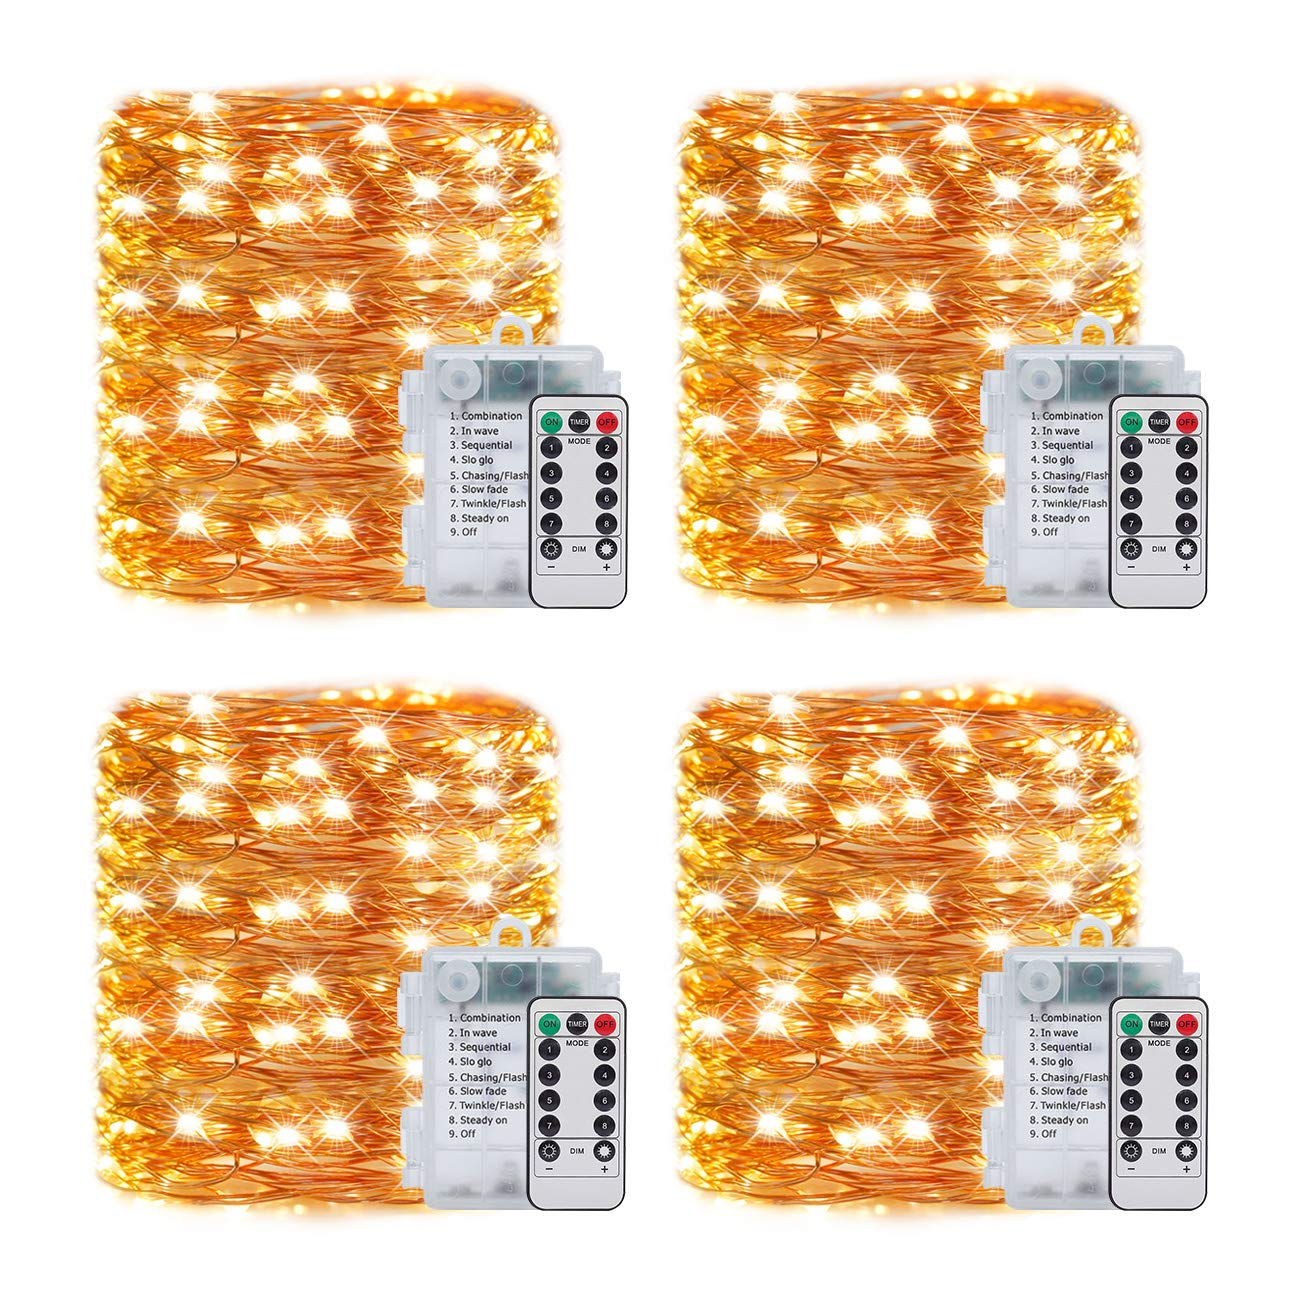 LEDIKON 4 Pack 33Ft 100 Led Fairy Lights Battery Operated Mini String Lights with 8 Modes Remote Control and Timer,Waterproof Firefly Twinkle Lights for Bedroom Wedding Chirstmas Decor(Warm White)